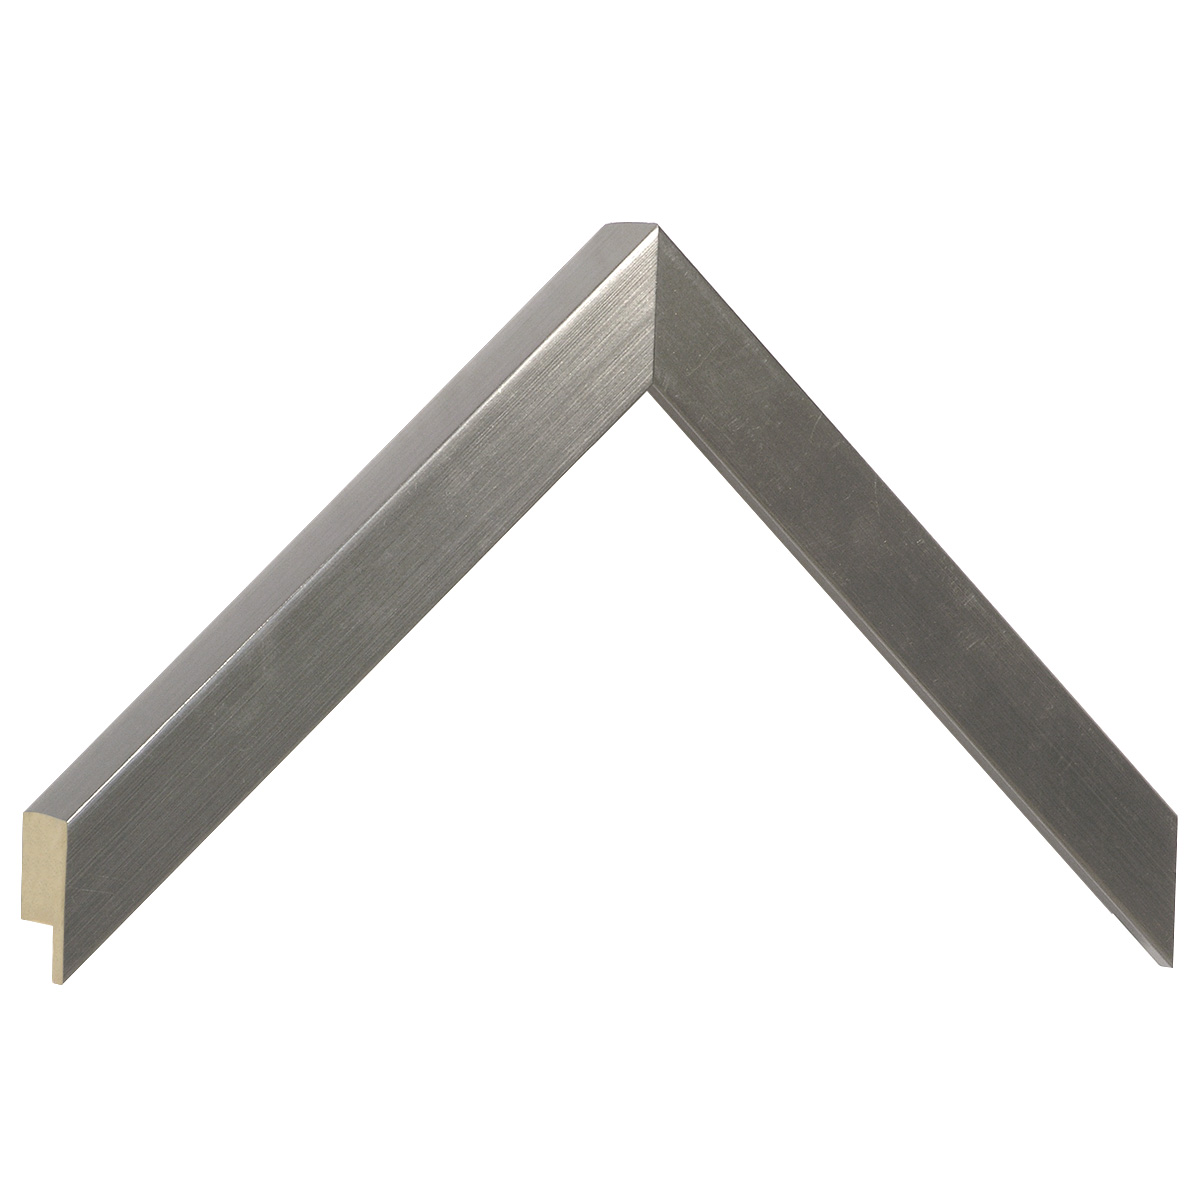 Moulding ayous, width 20mm height 25 - Pewter